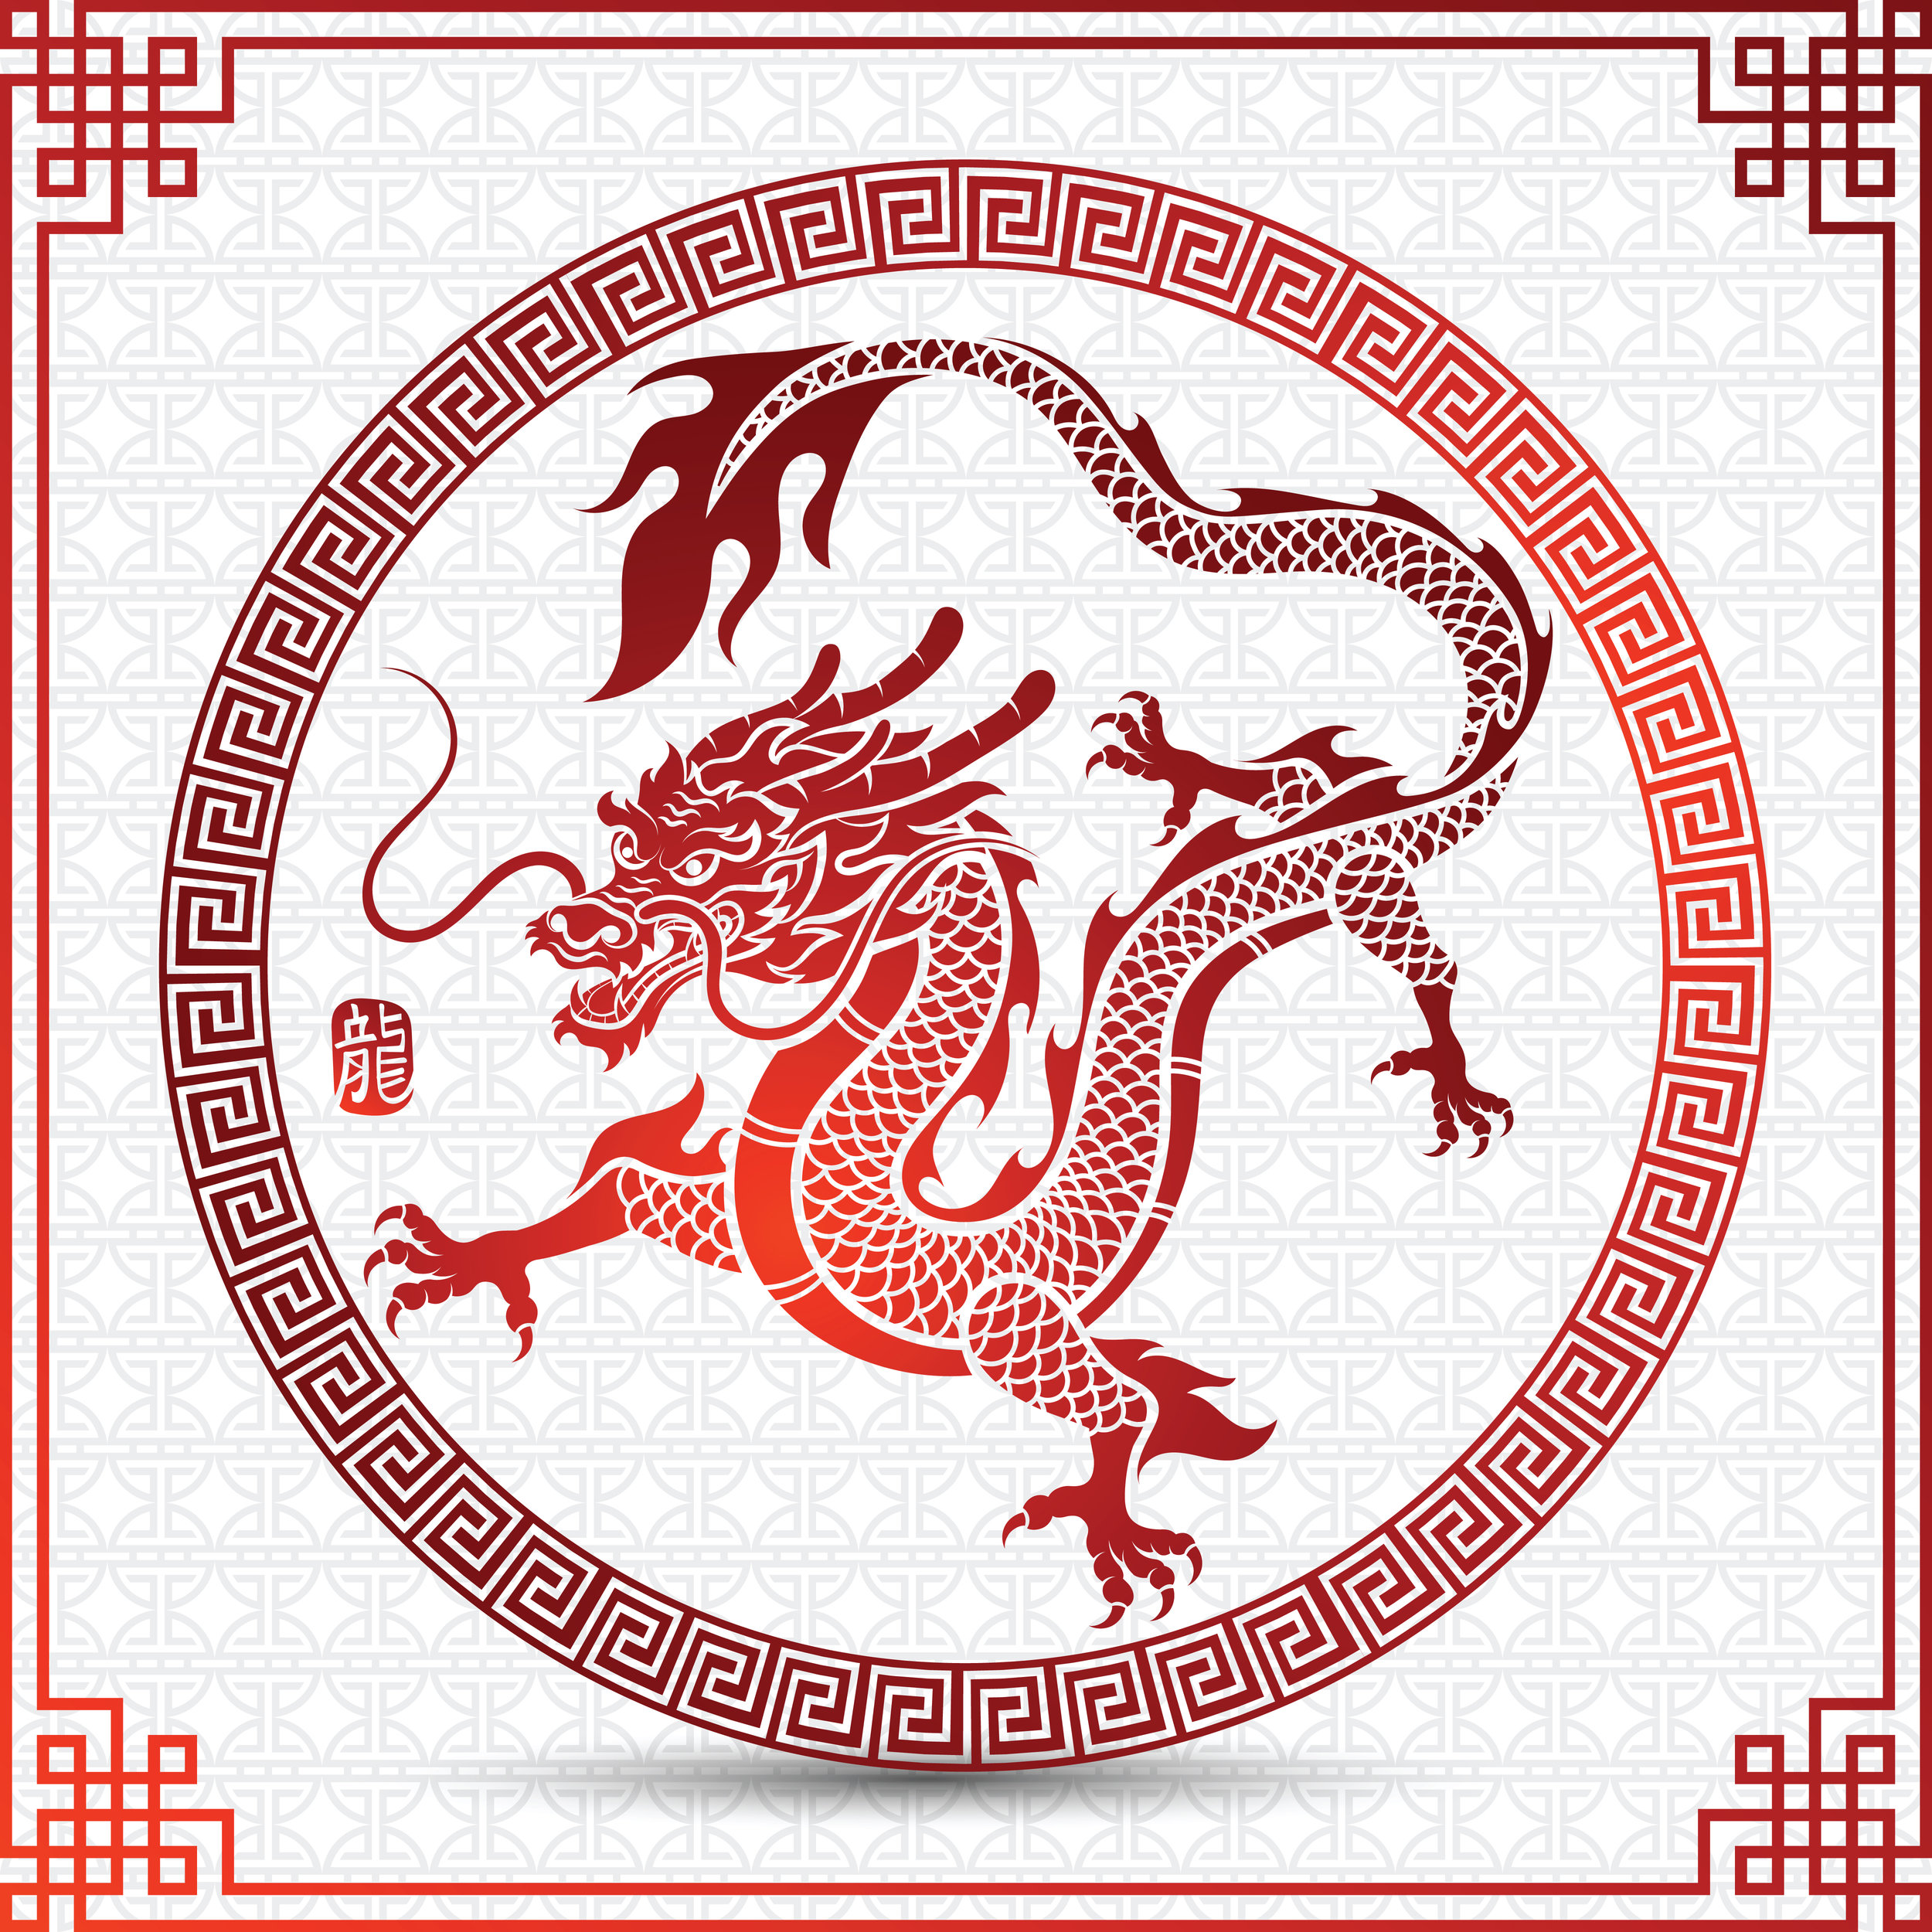 Traditional Chinese dragon reminds us of the fiery face and long tail of inaction on climate change.